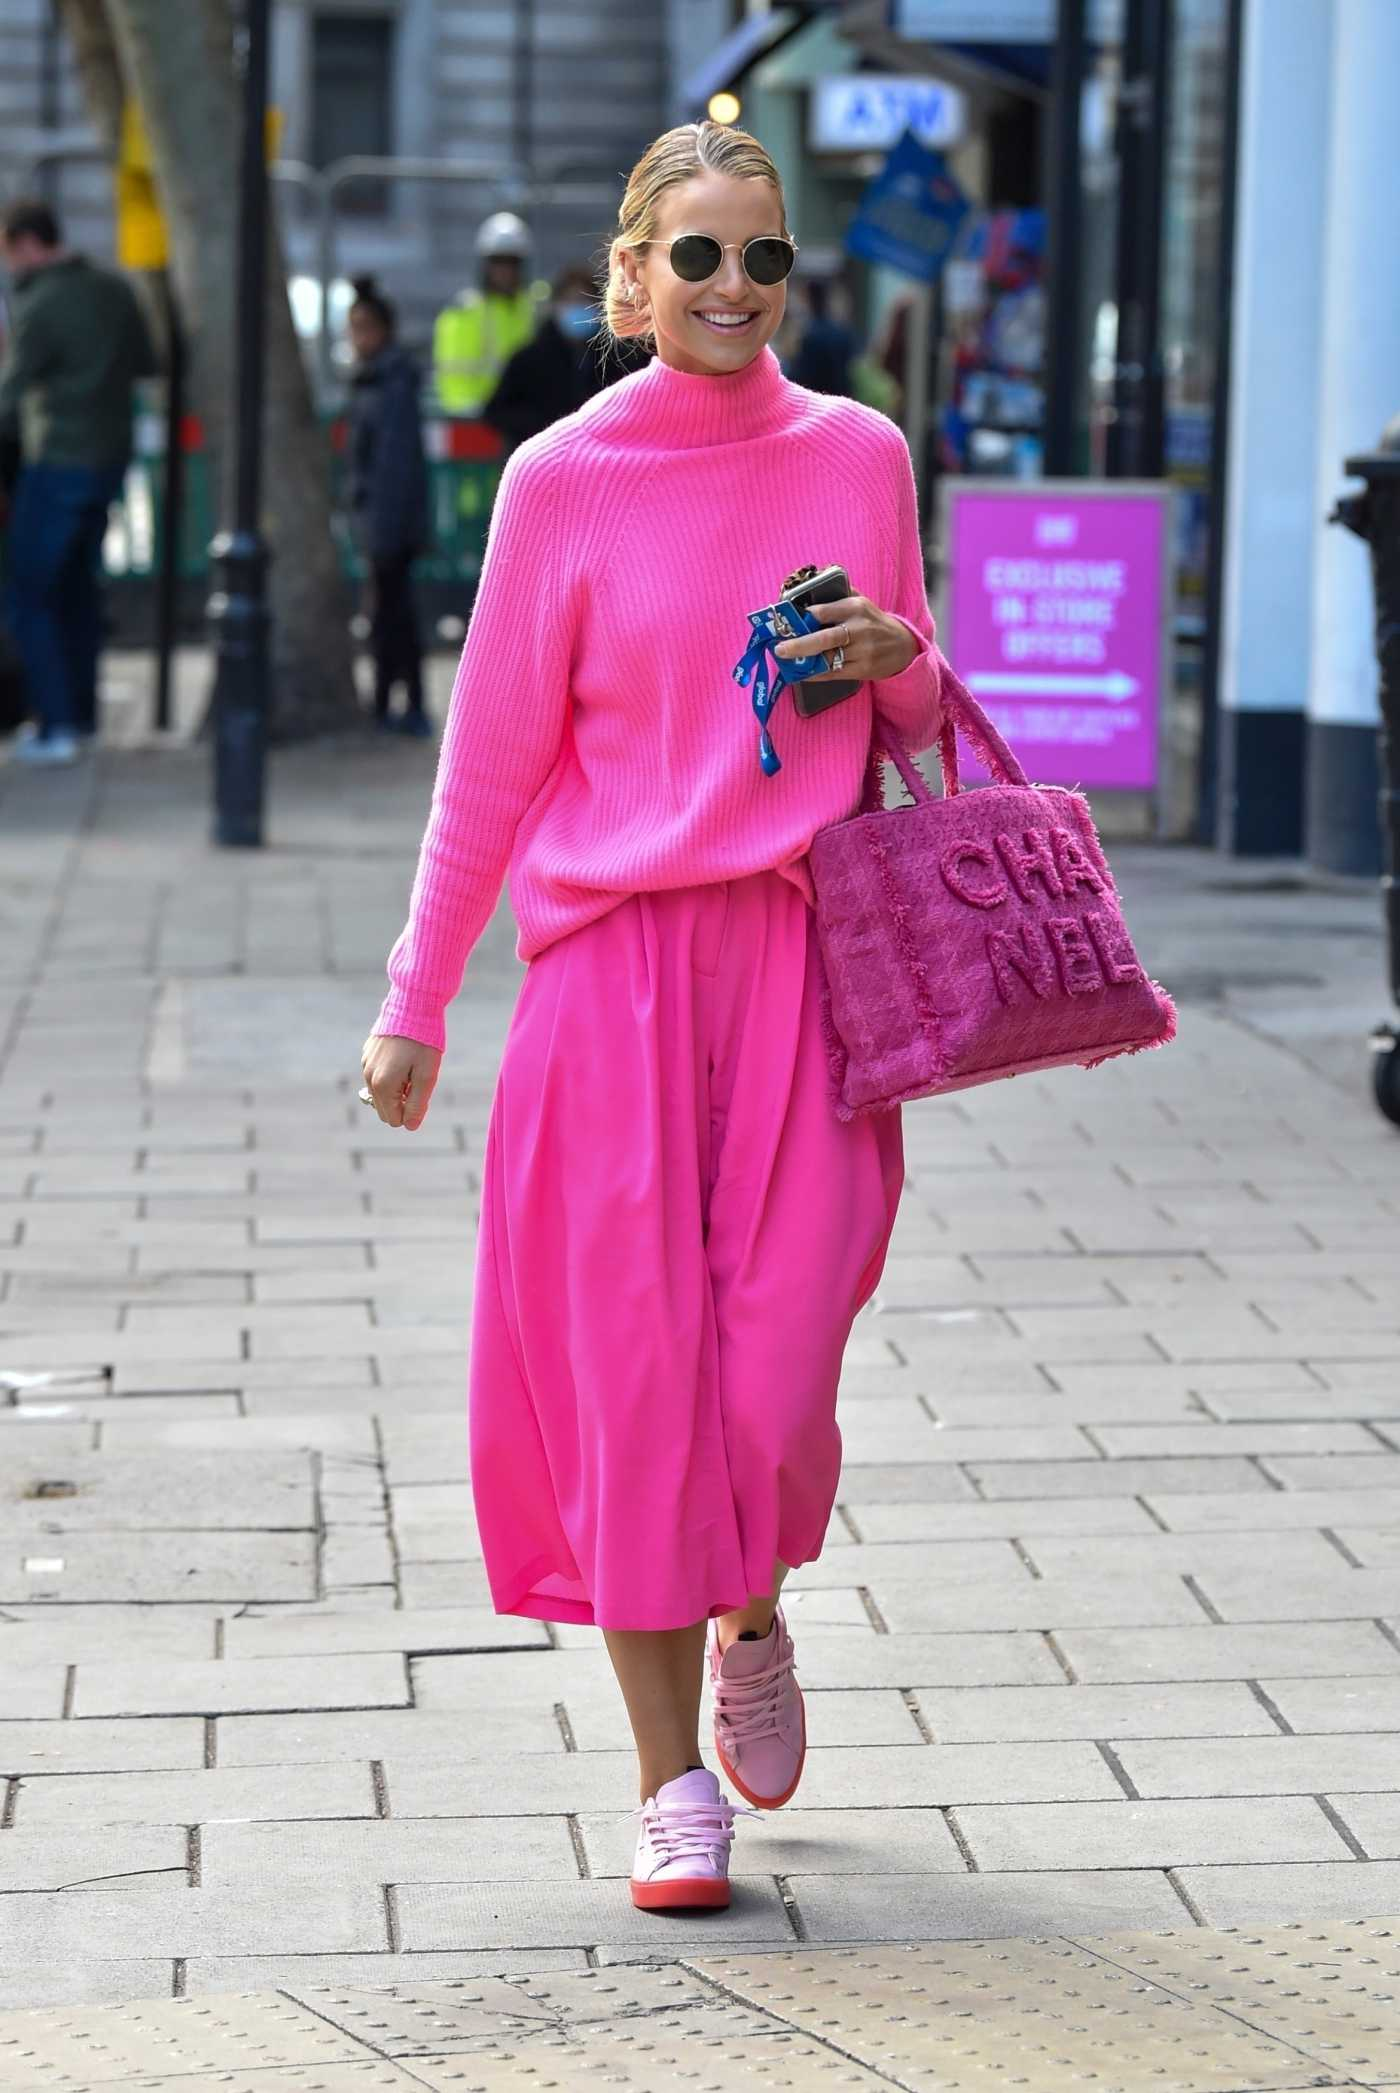 Vogue Williams in a Pink Outfit Arrives at the Global Studios in London 10/16/2020